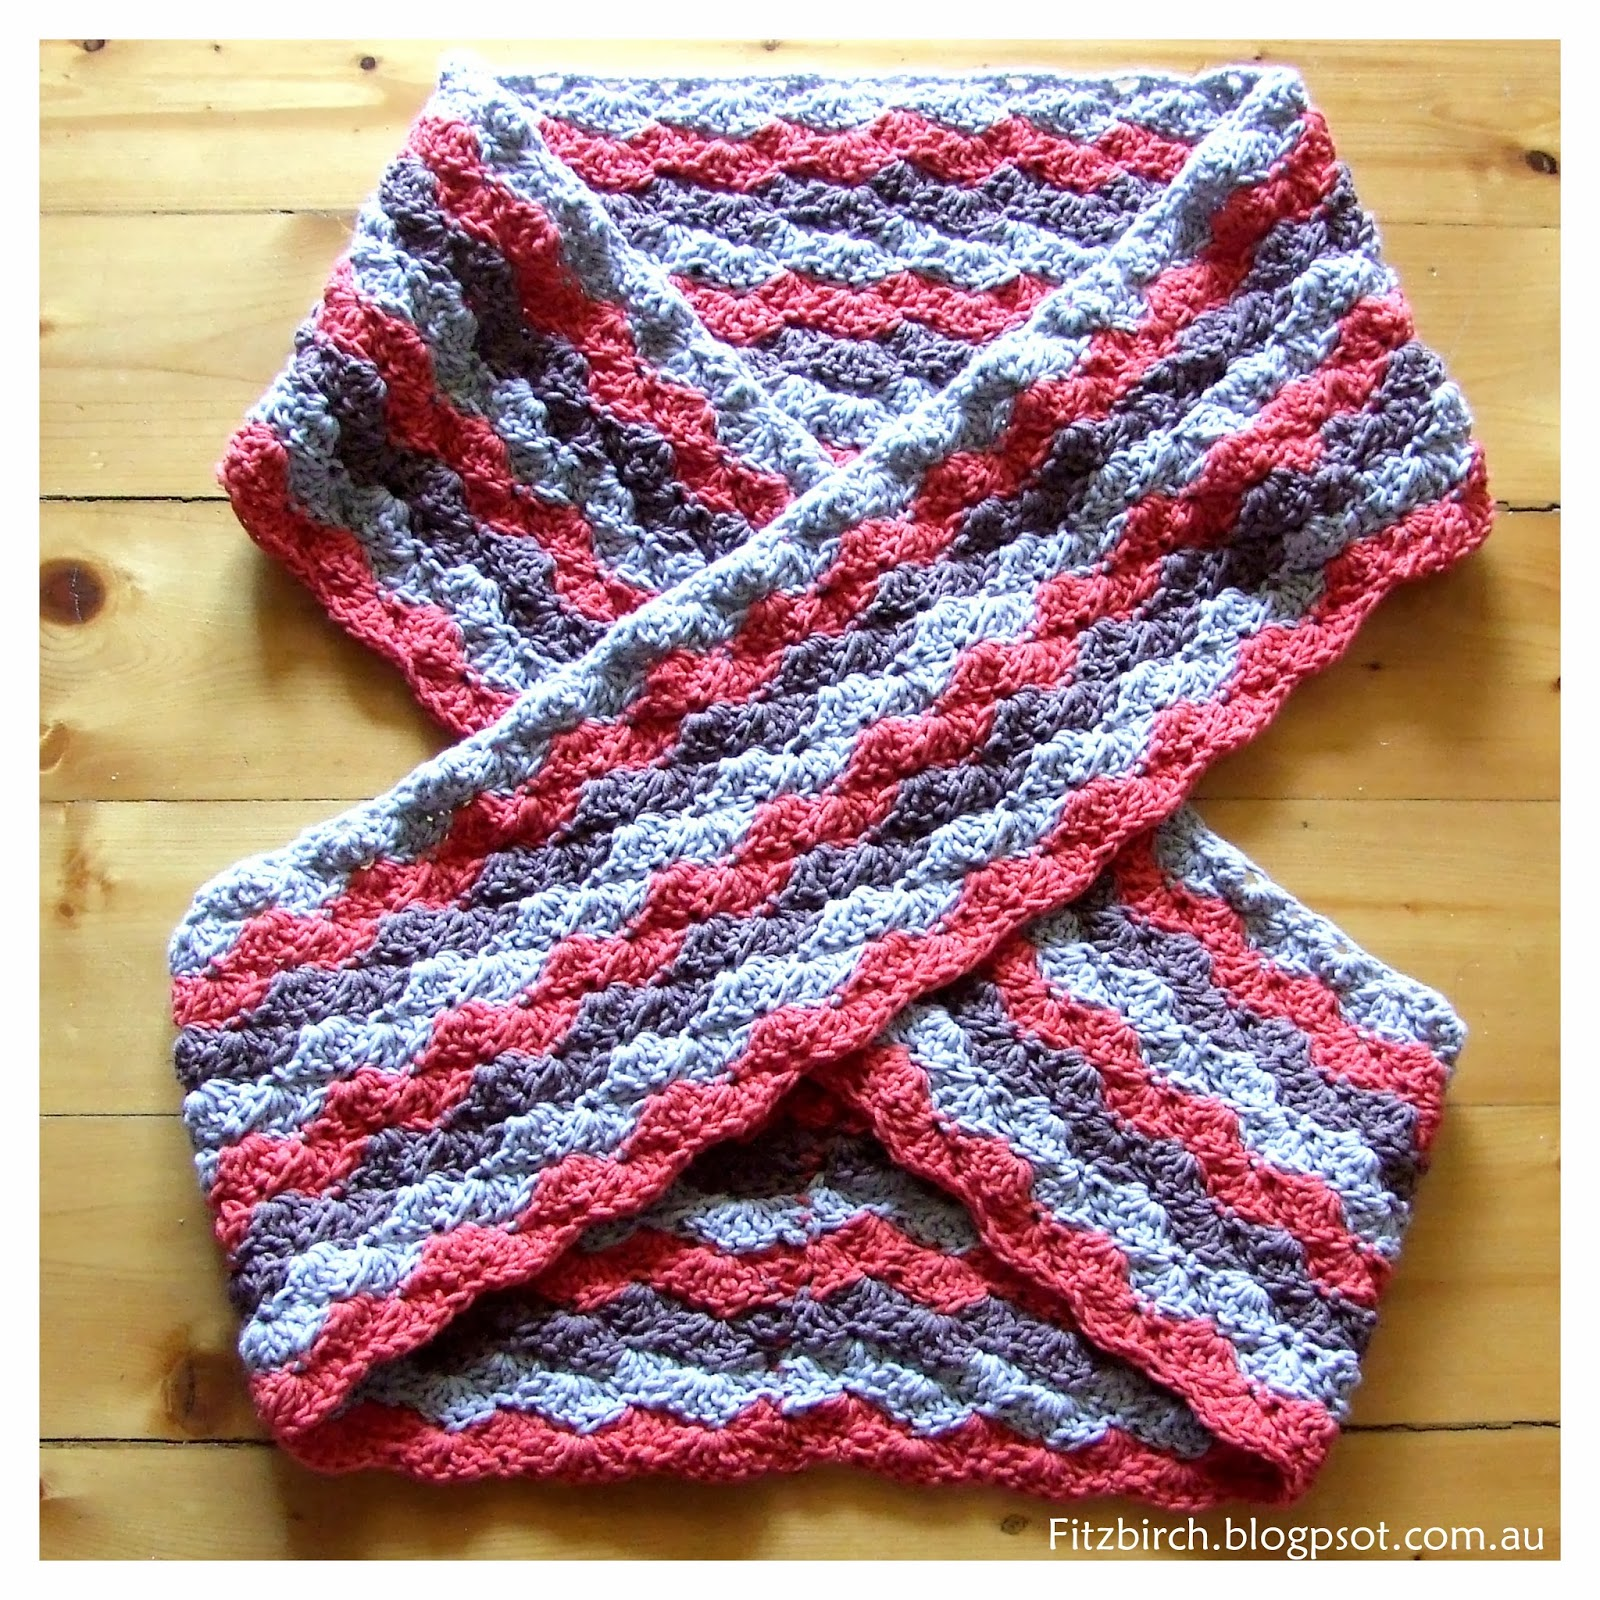 Crocheting Two Ends Together : ... Place work in a figure 8 pattern as shown and and sew ends together